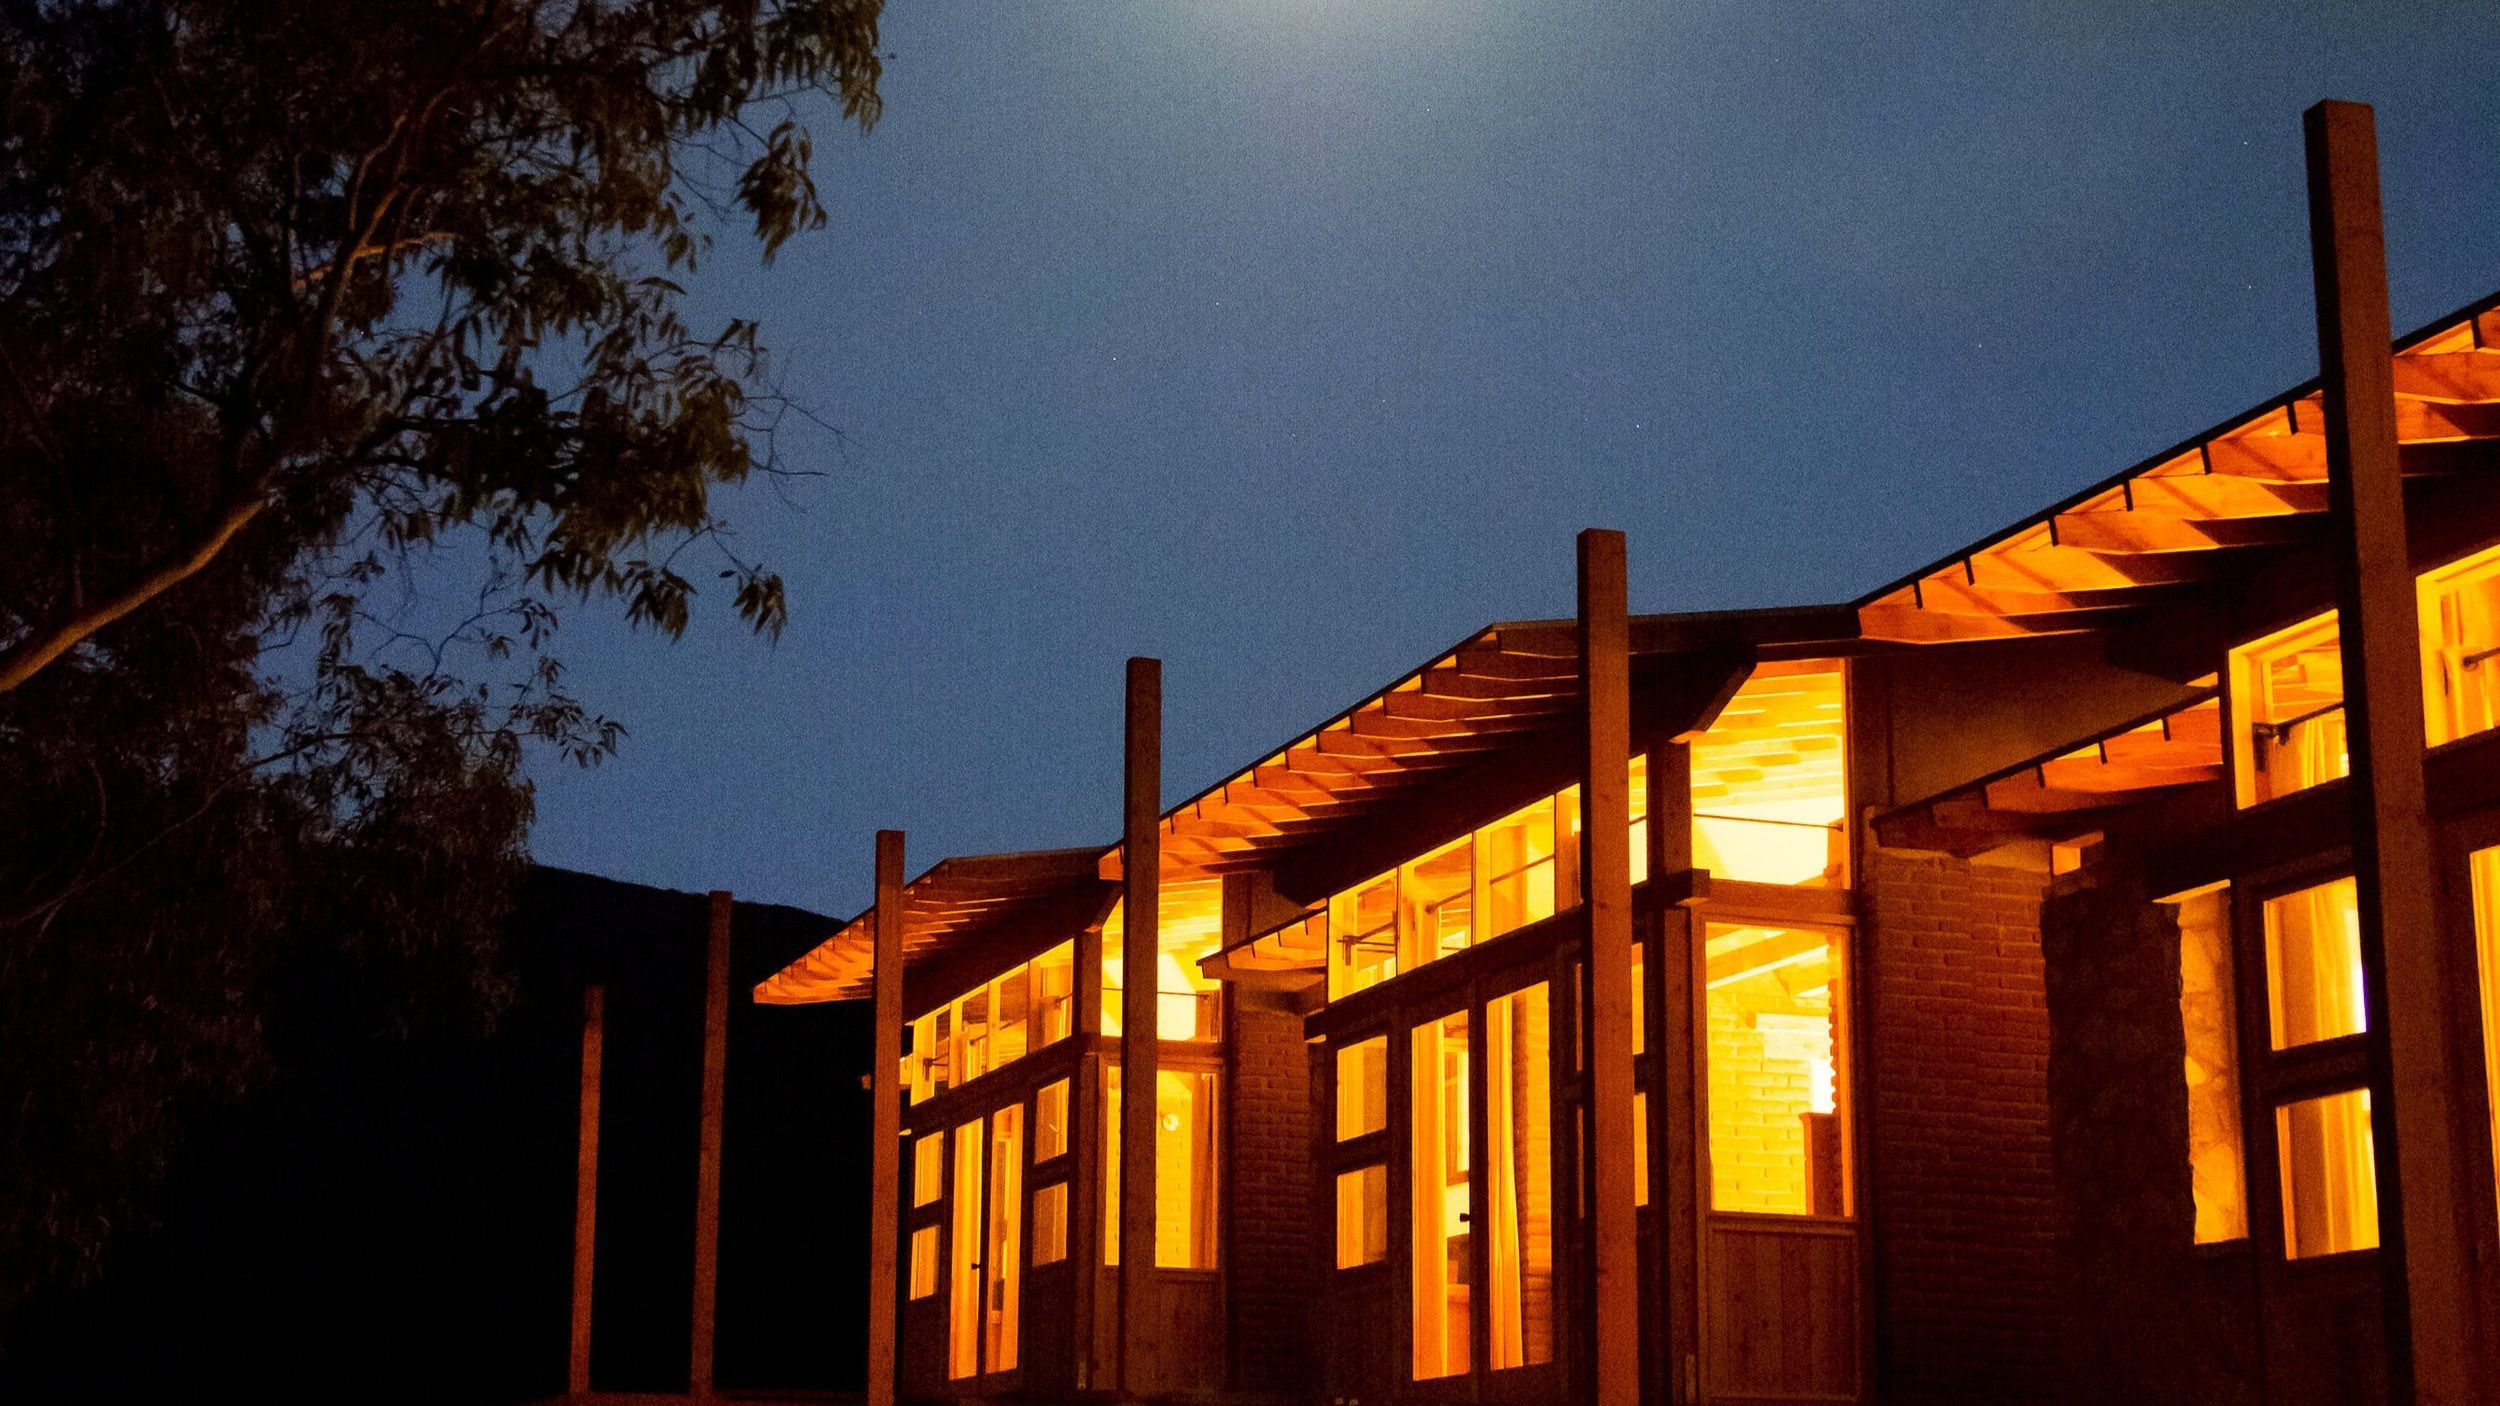 Pet friendly Bead & Breakfast - Valle de Guadalupe Baja California's Wine Country.For the best rates, book direct with us